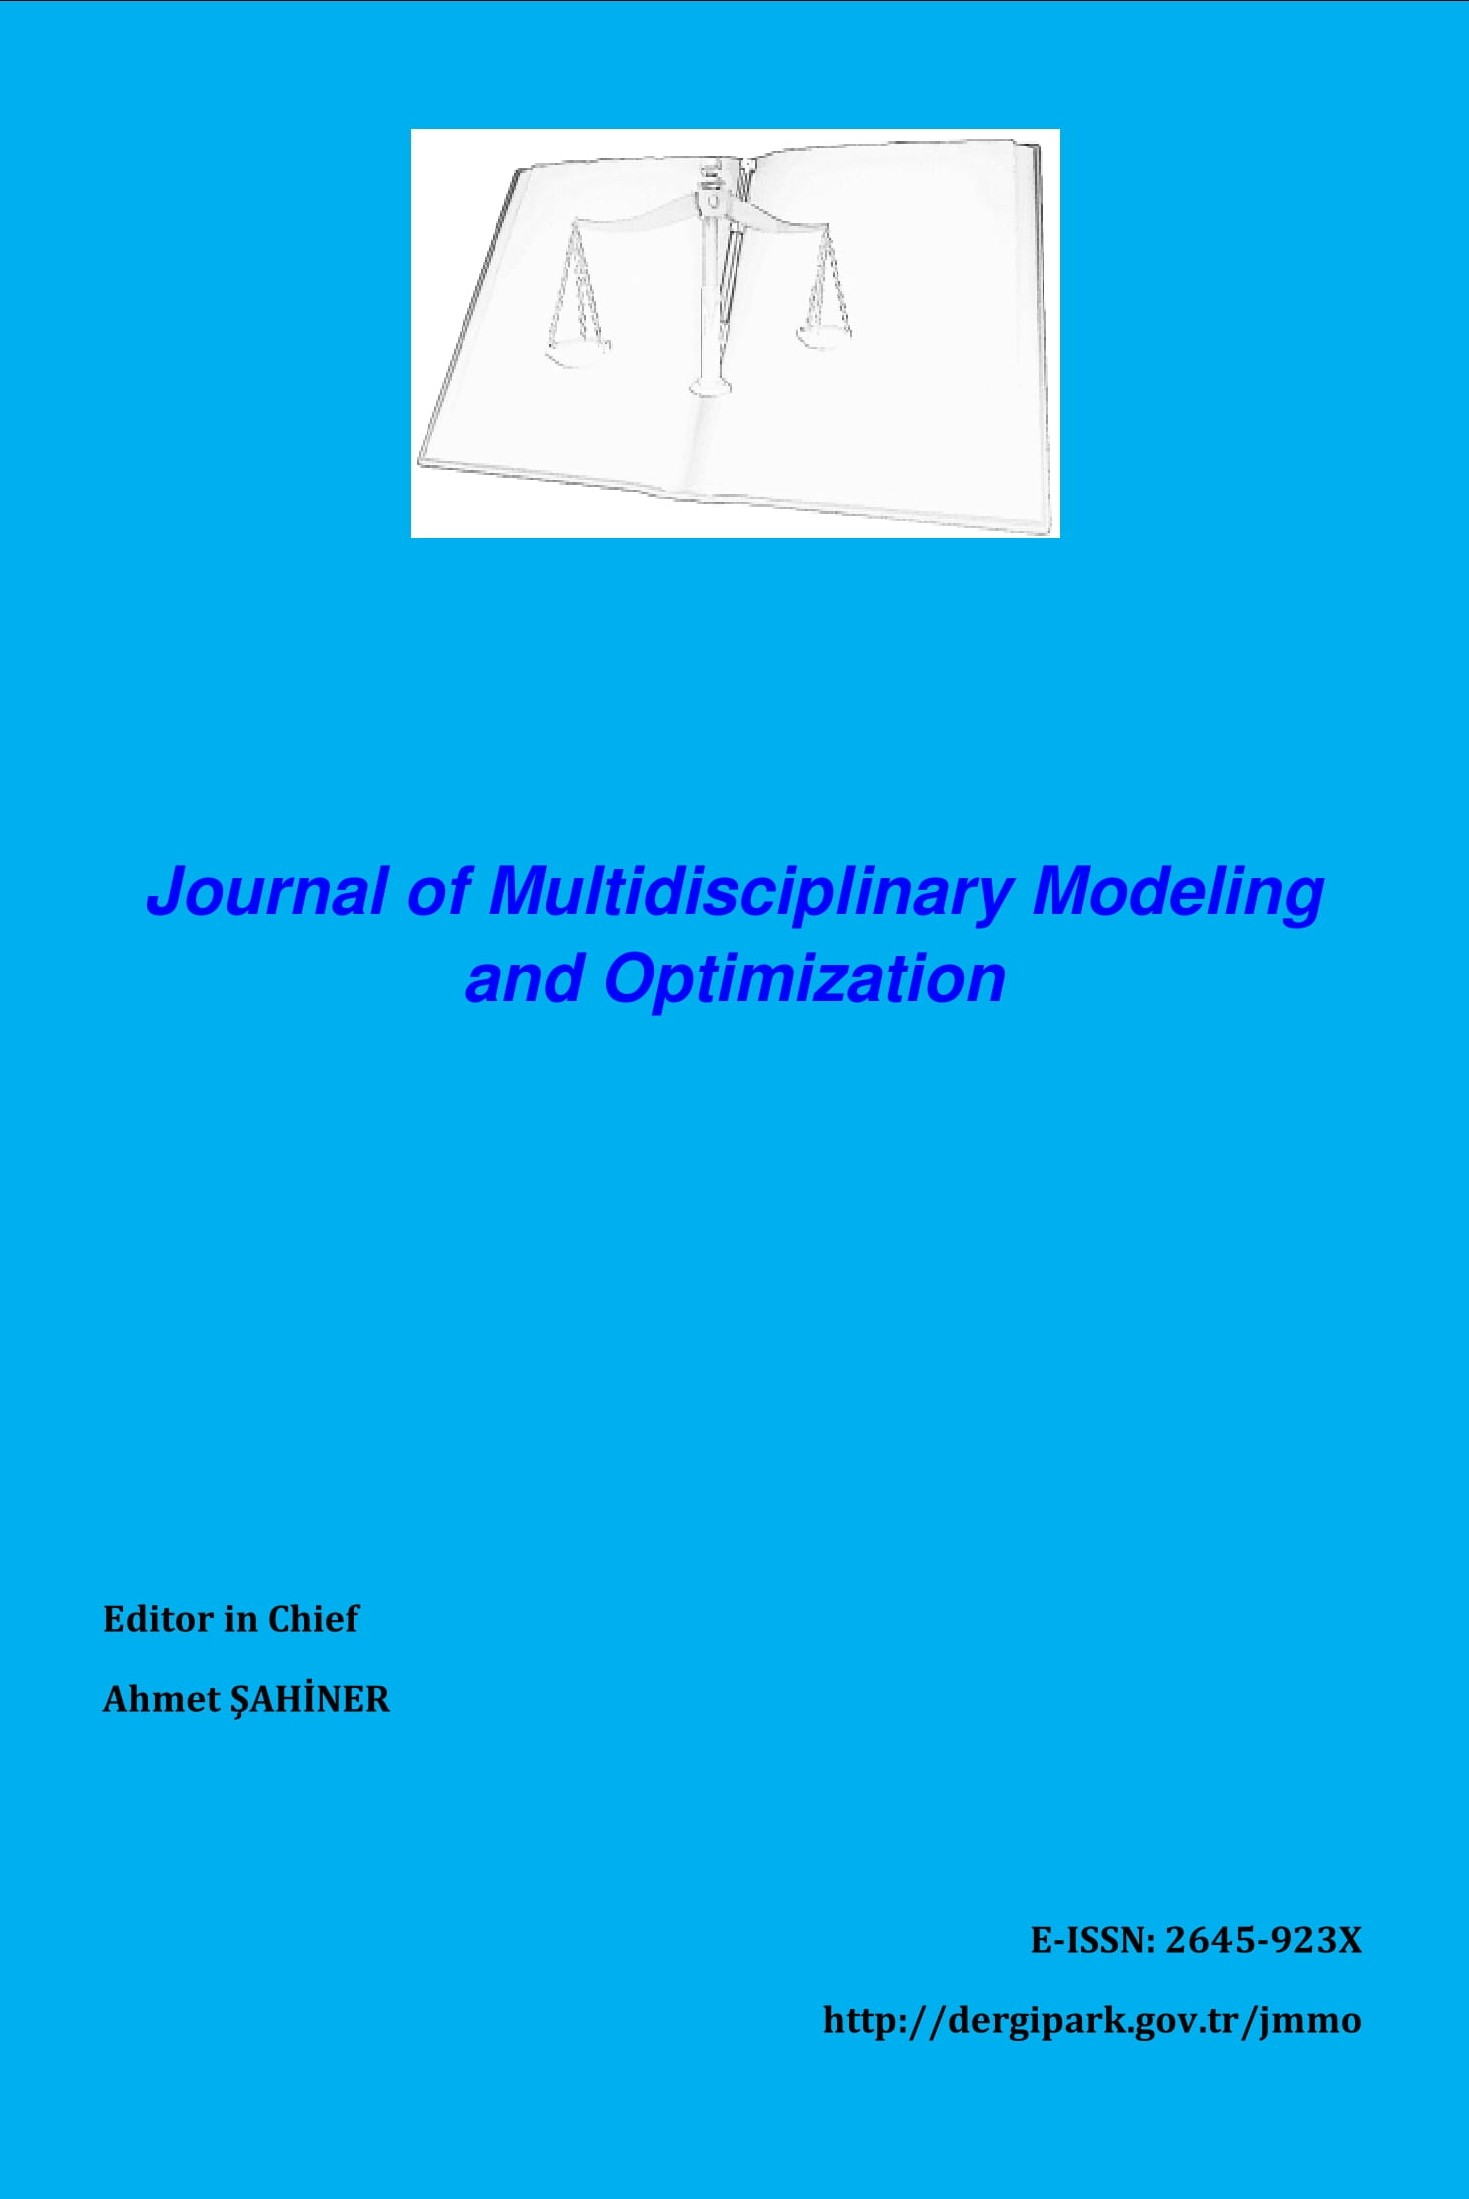 Journal of Multidisciplinary Modeling and Optimization